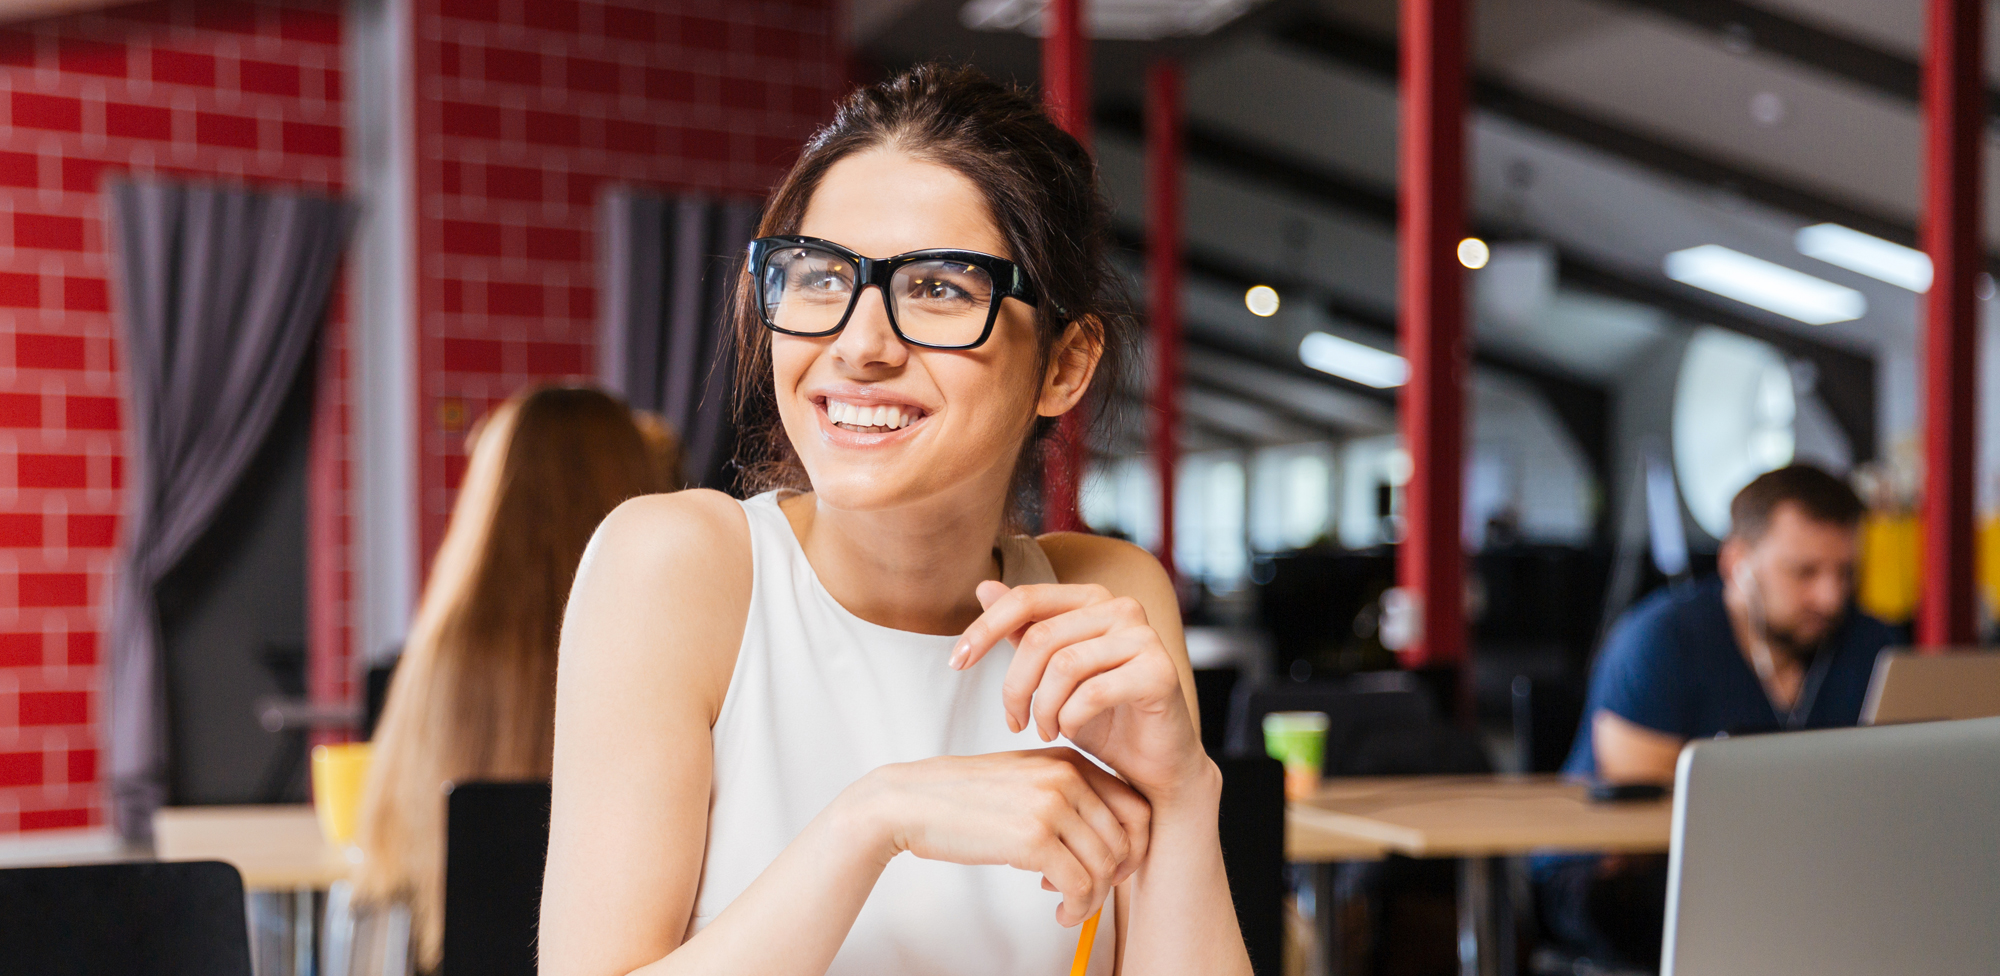 young woman sitting with laptop smiling and looking away